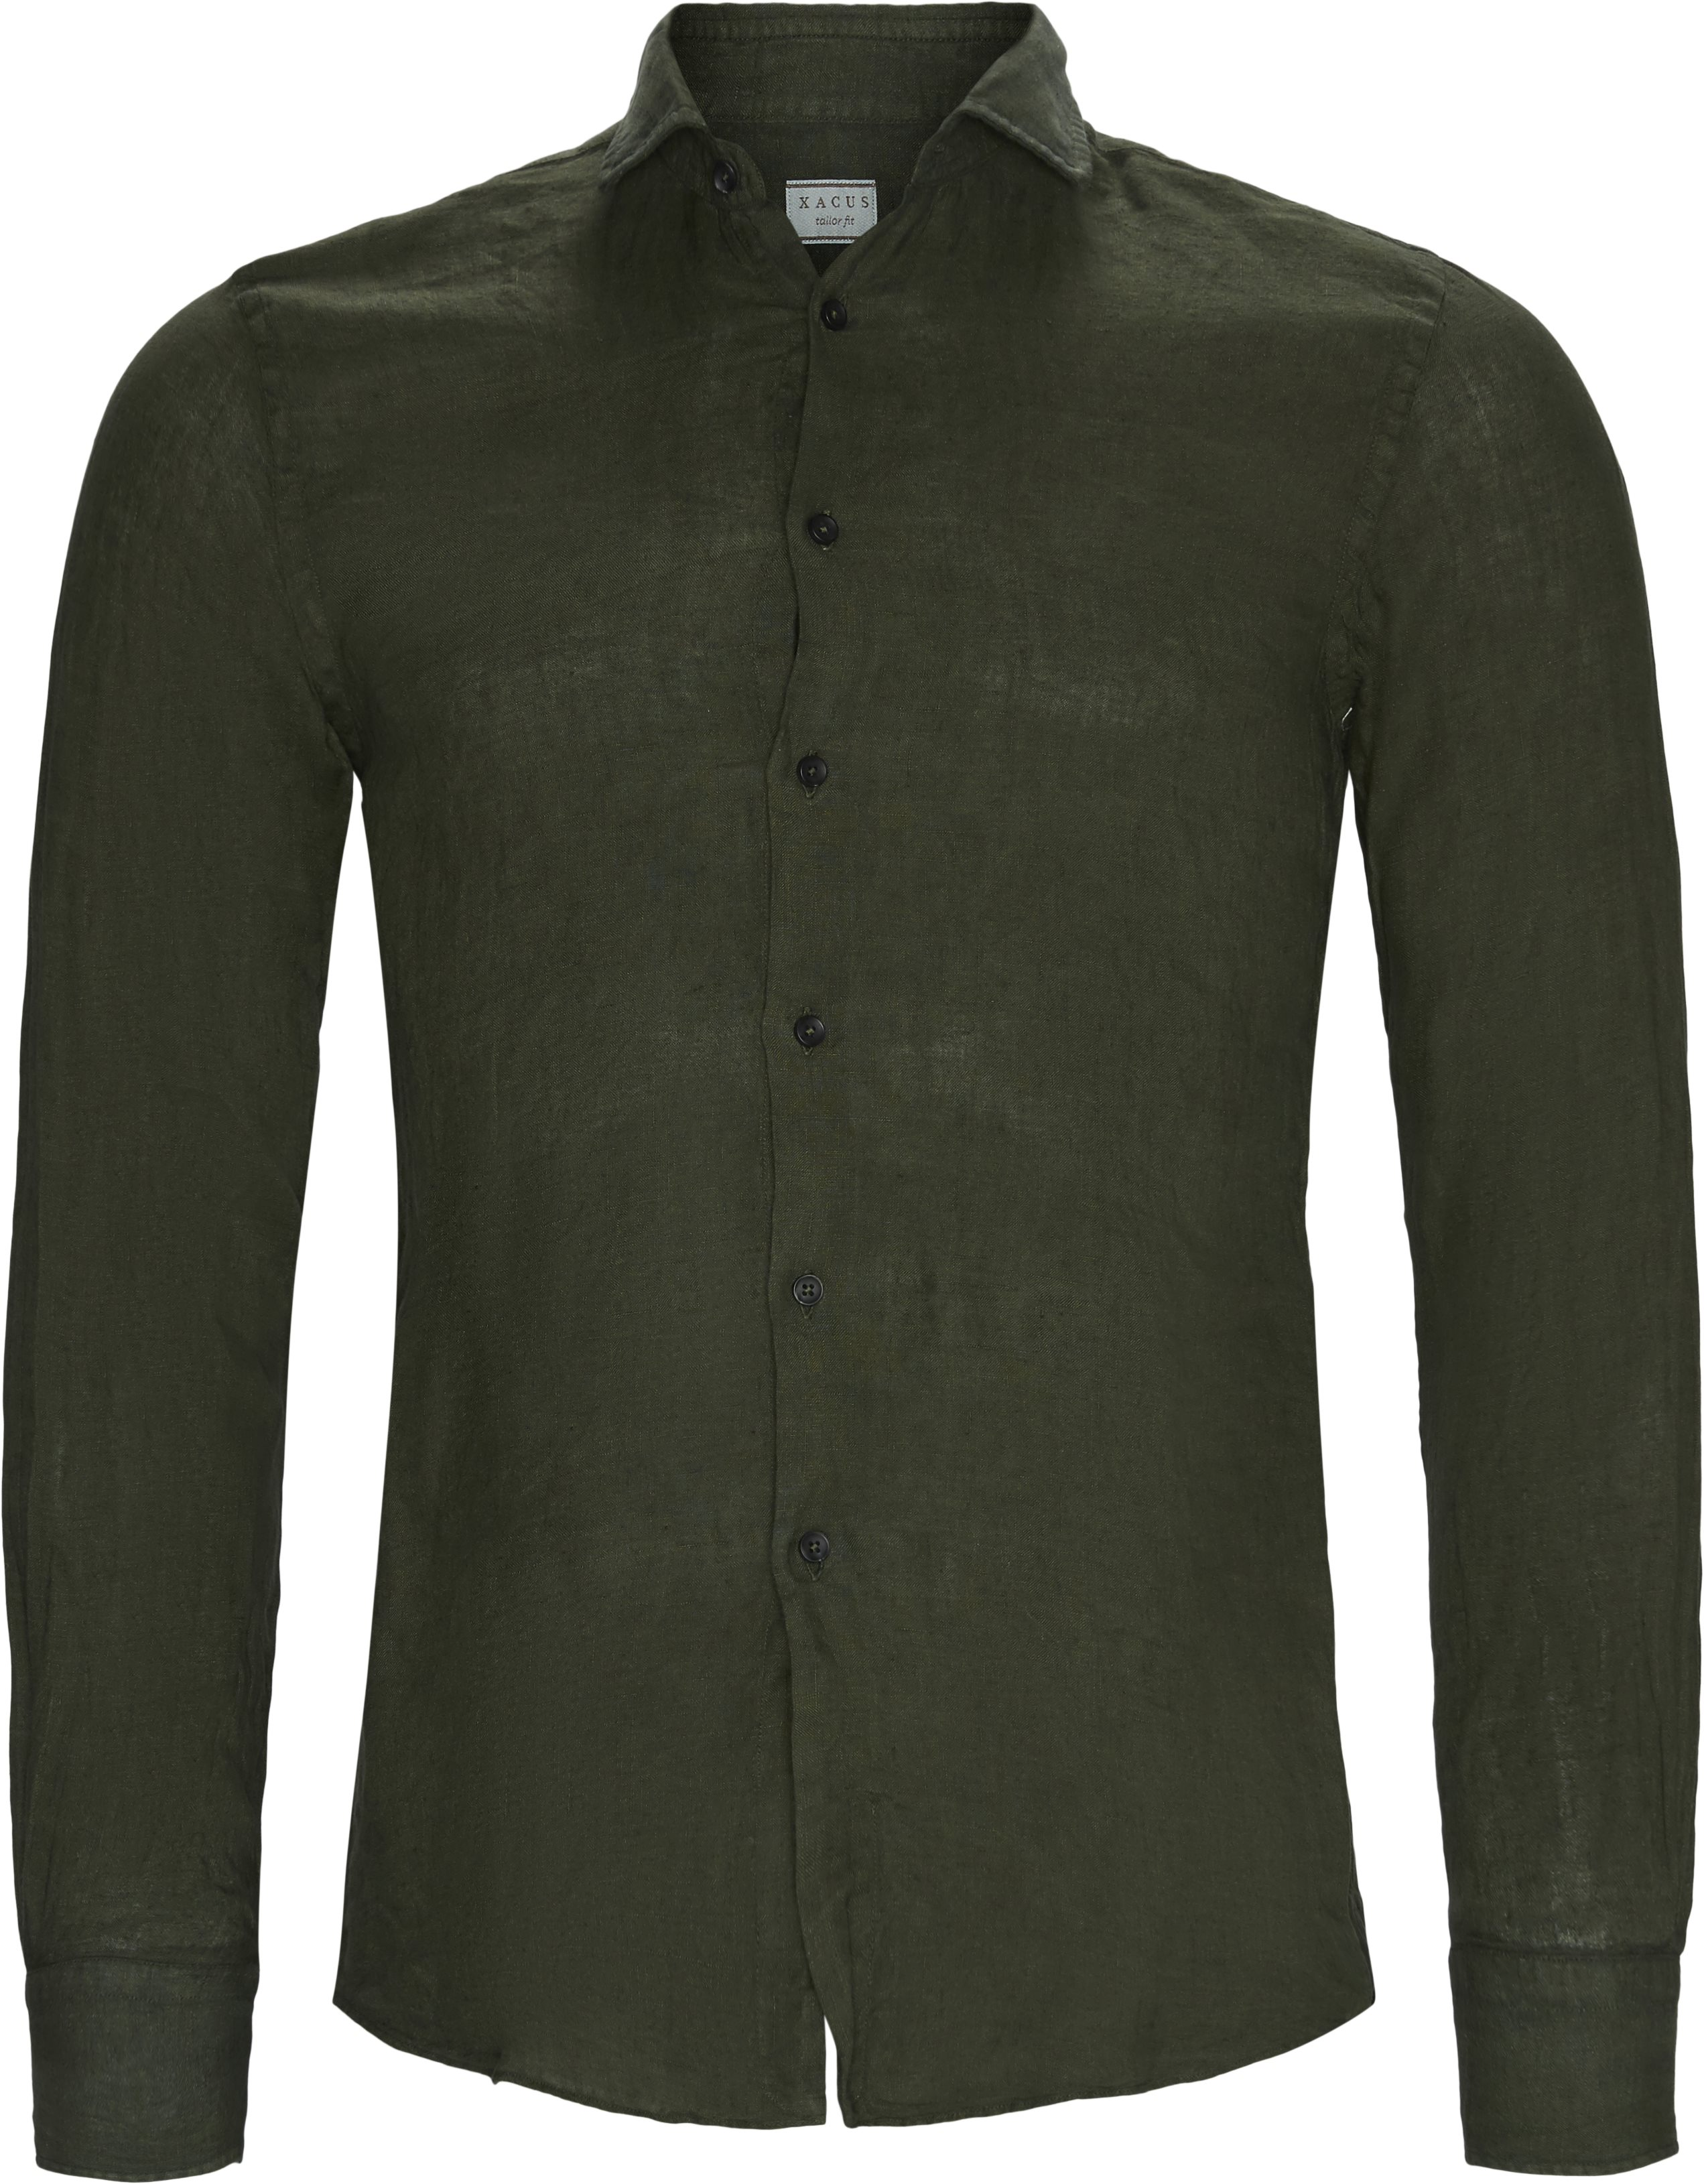 Shirts - Tailored fit - Army